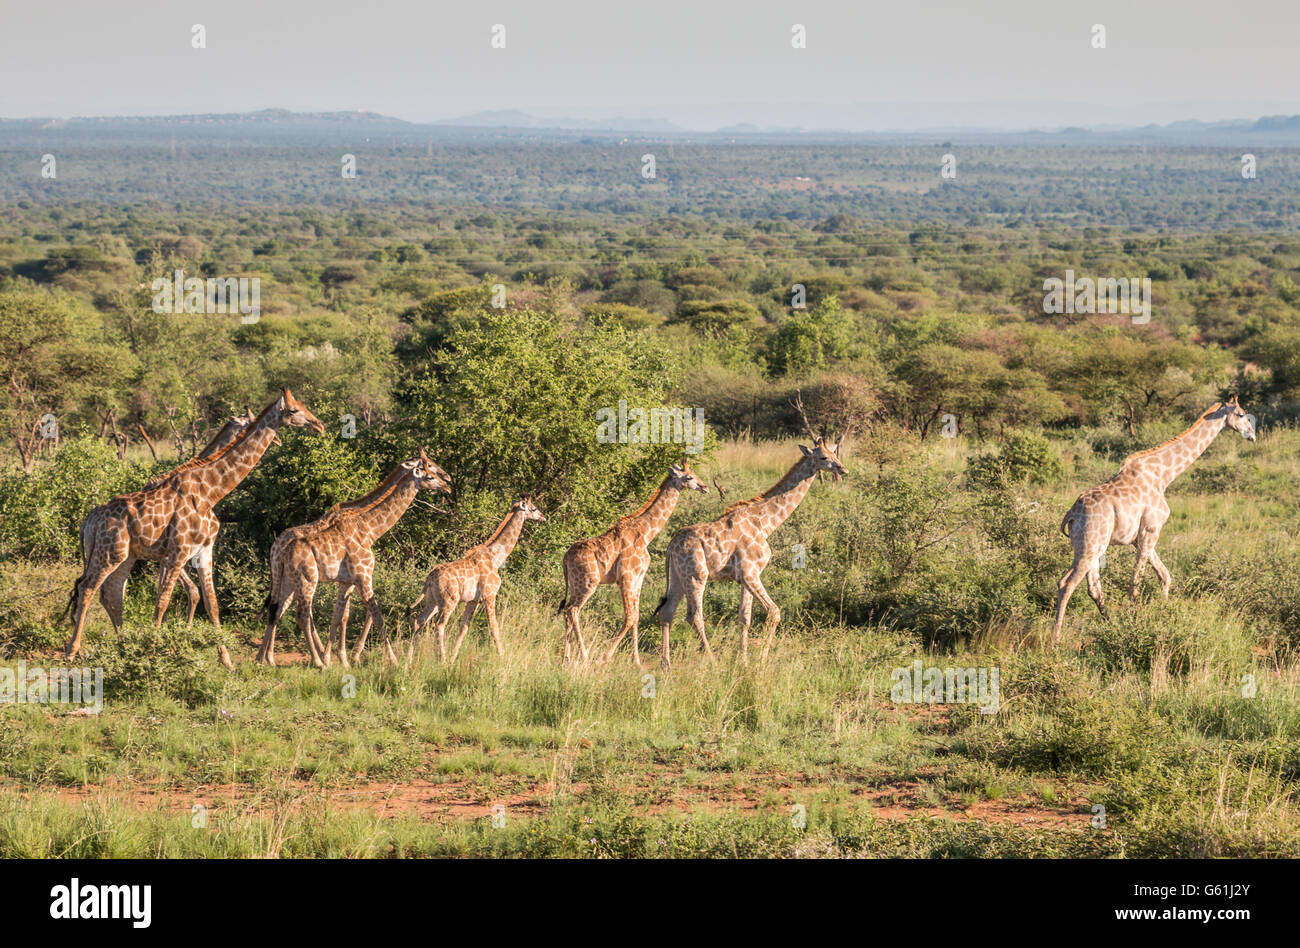 Giraffes in African Safari - Stock Image